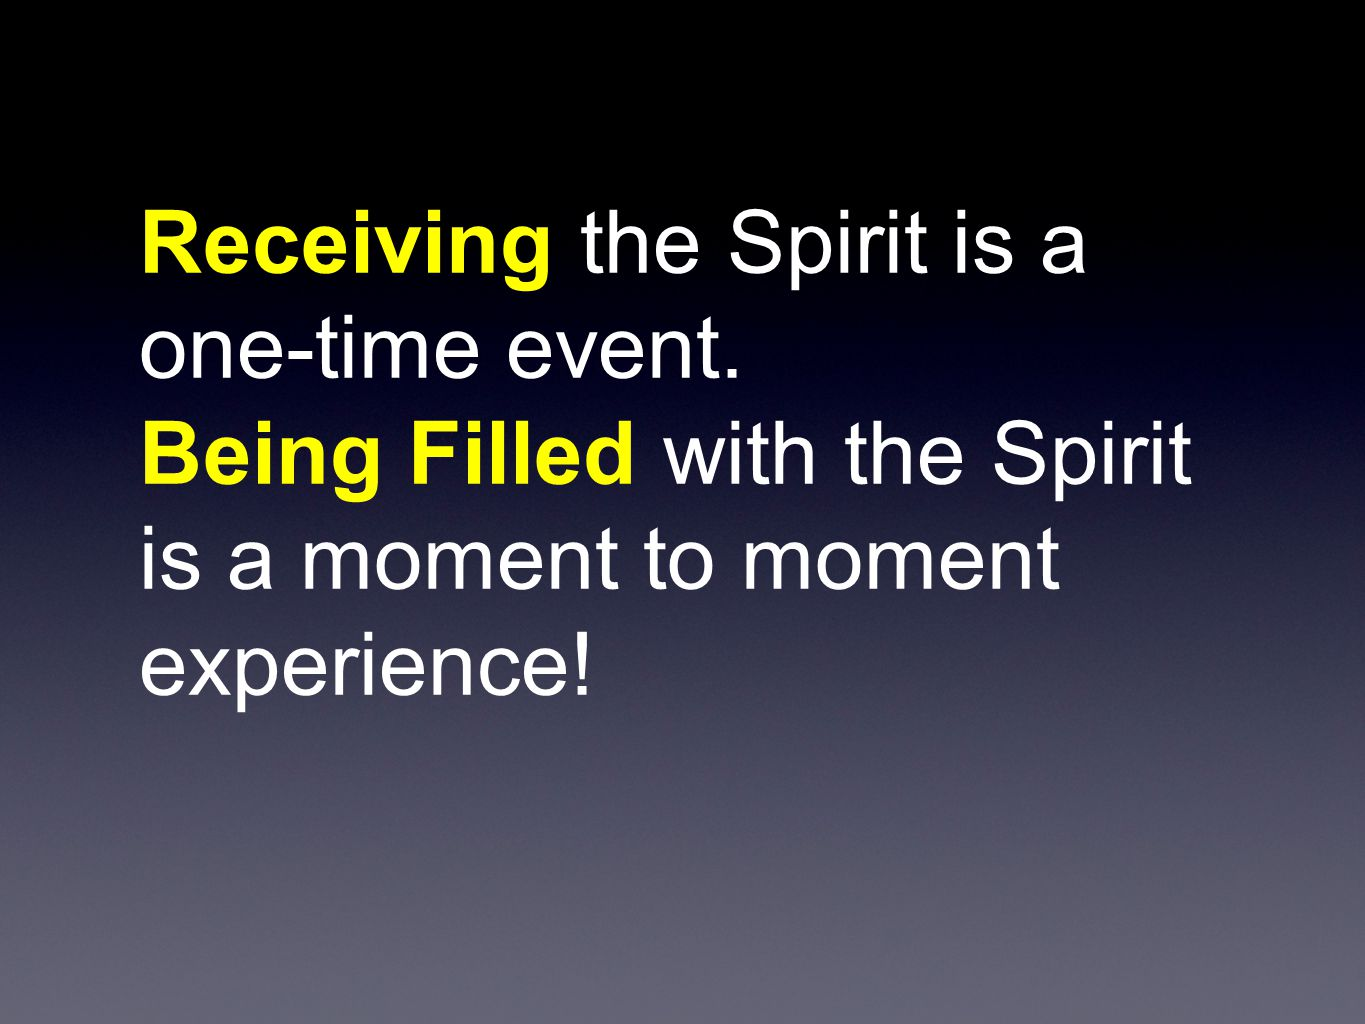 Receiving the Spirit is a one-time event